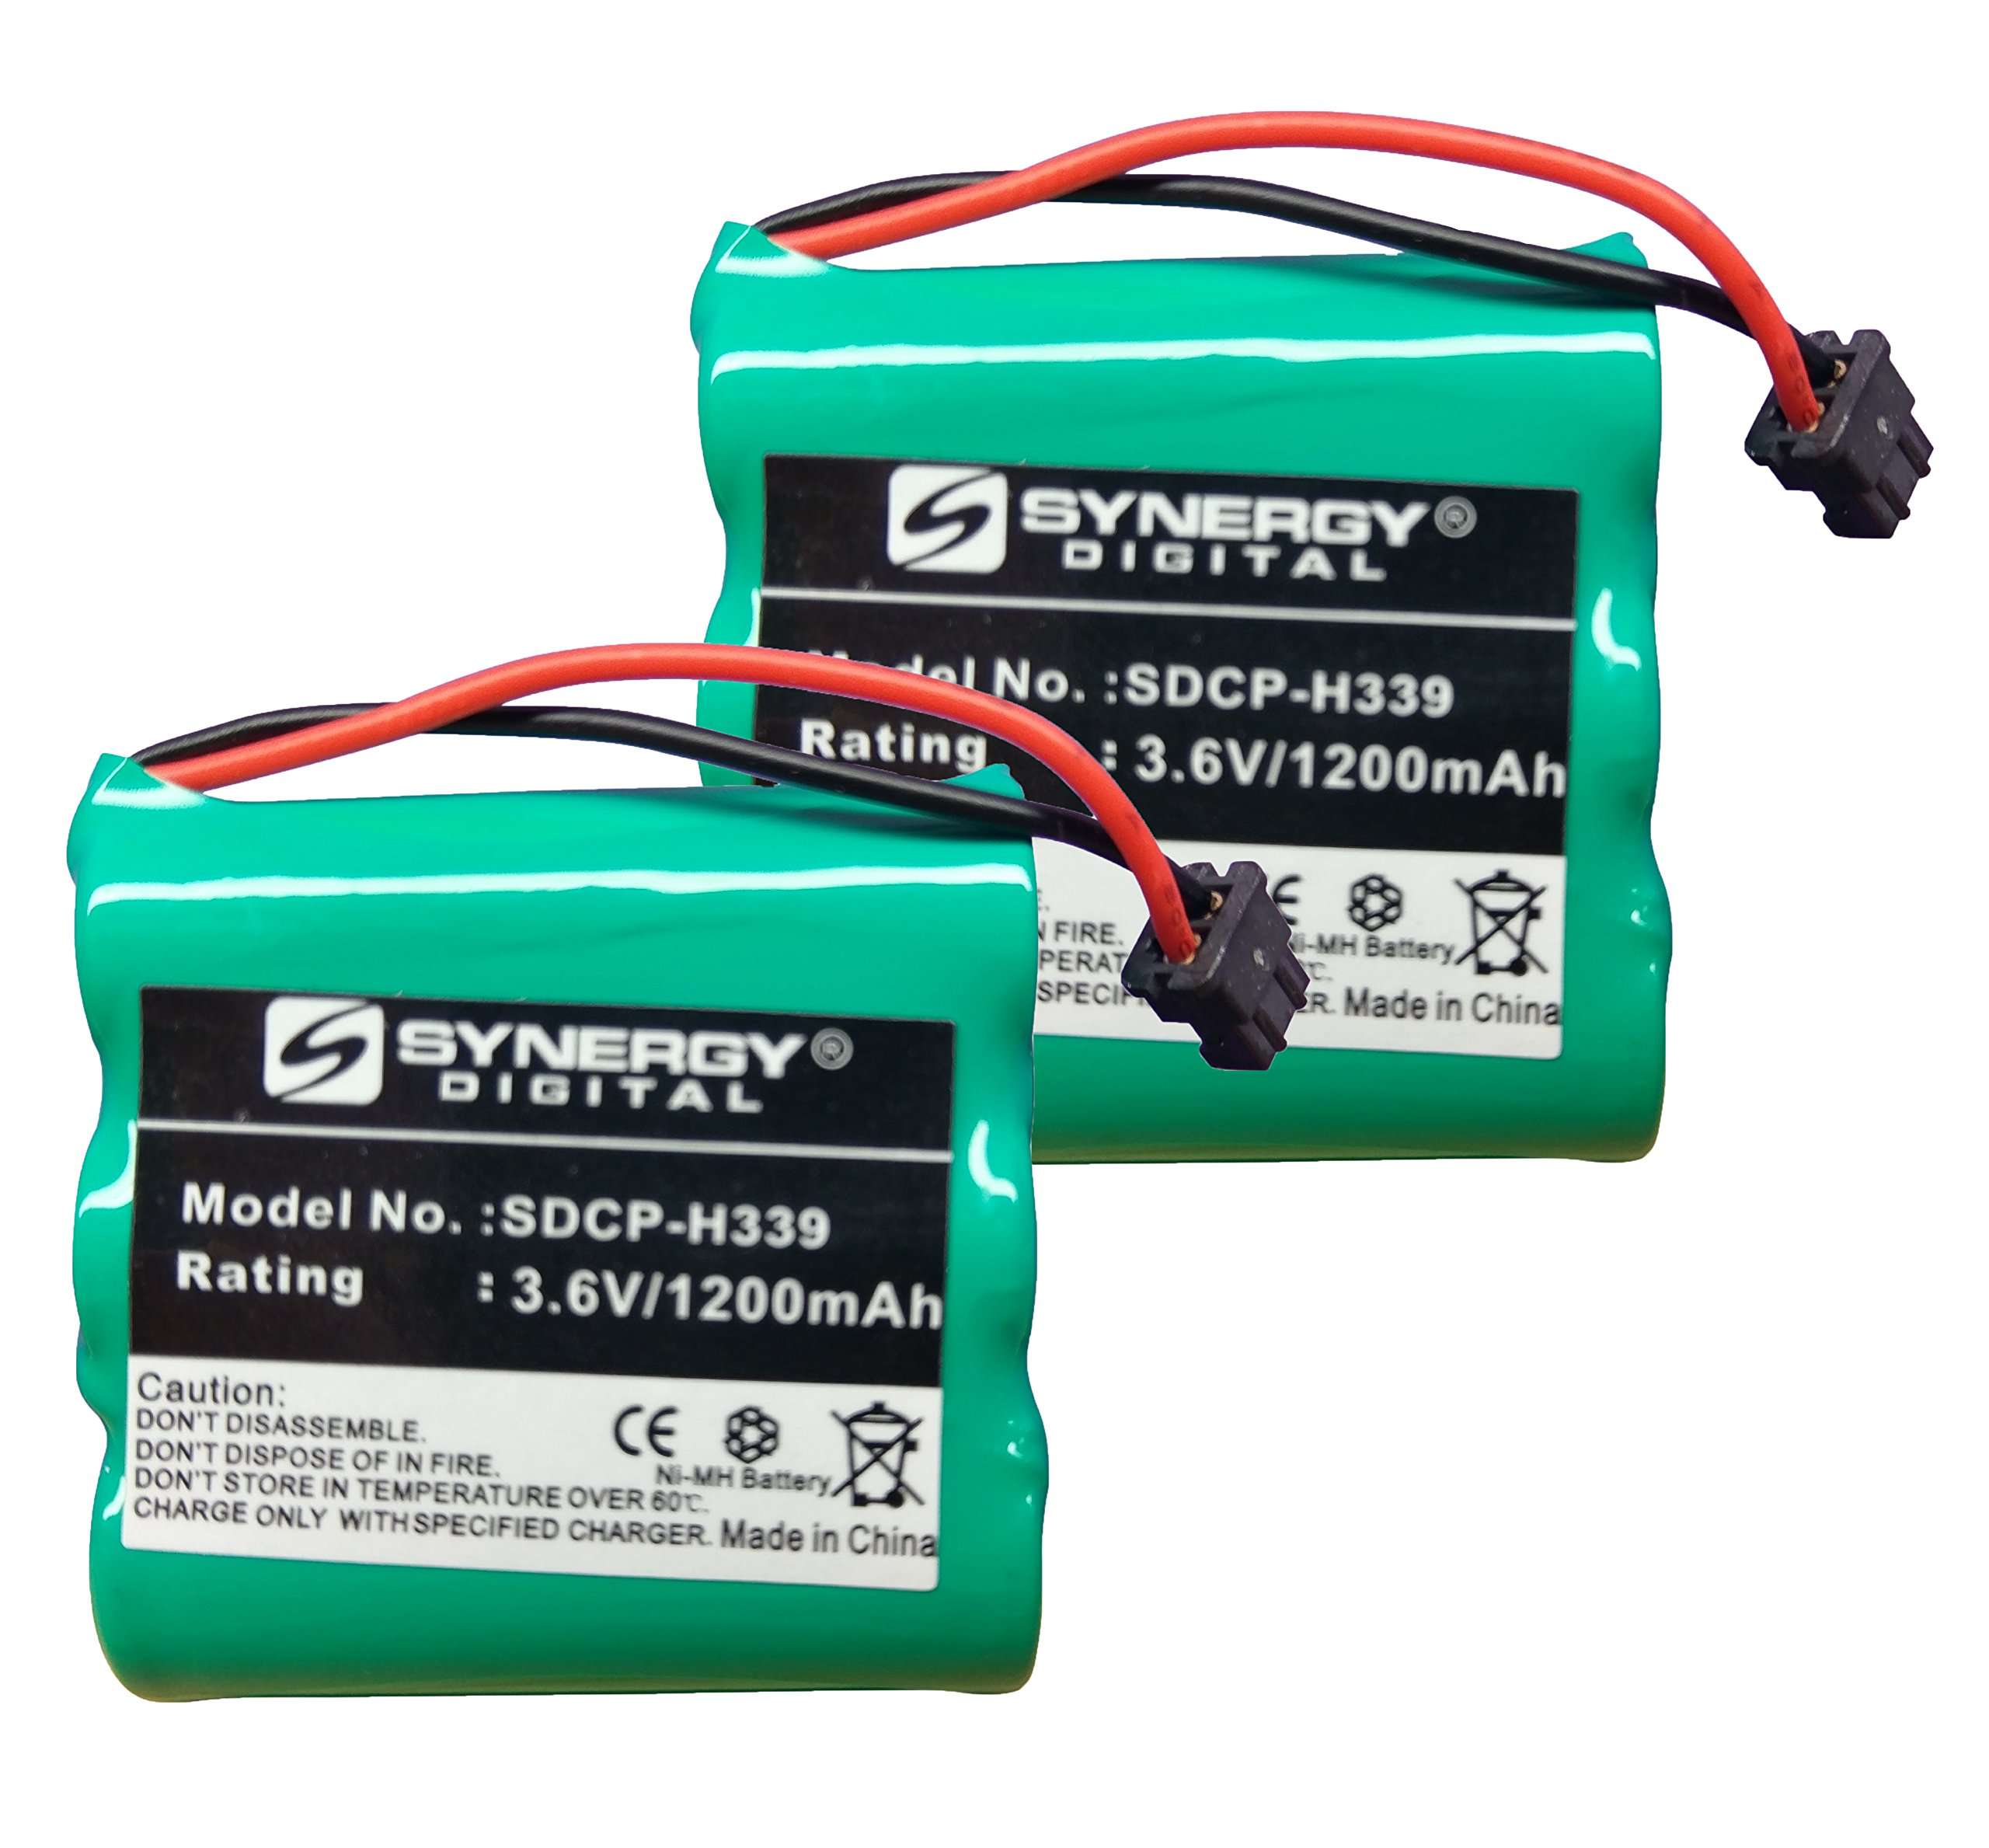 Radio Shack 23-897 Cordless Phone Battery Combo-Pack Includes: 2 x SDCP-H339 Batteries by Synergy Digital